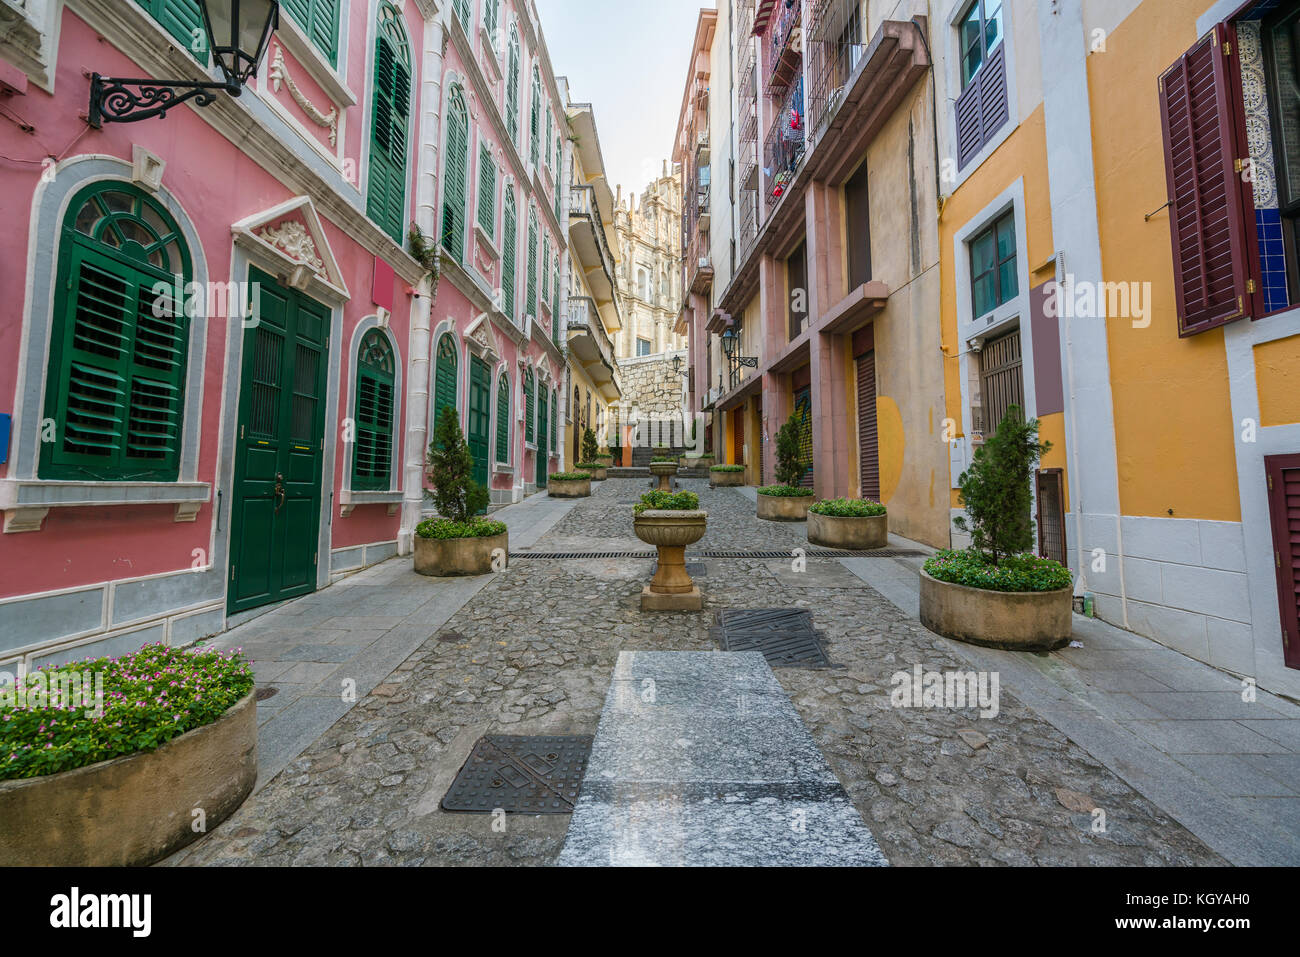 Scenic street in the old town in Macau (Macao) near Ruins of St Paul's in Macau (Macao) ,China. - Stock Image